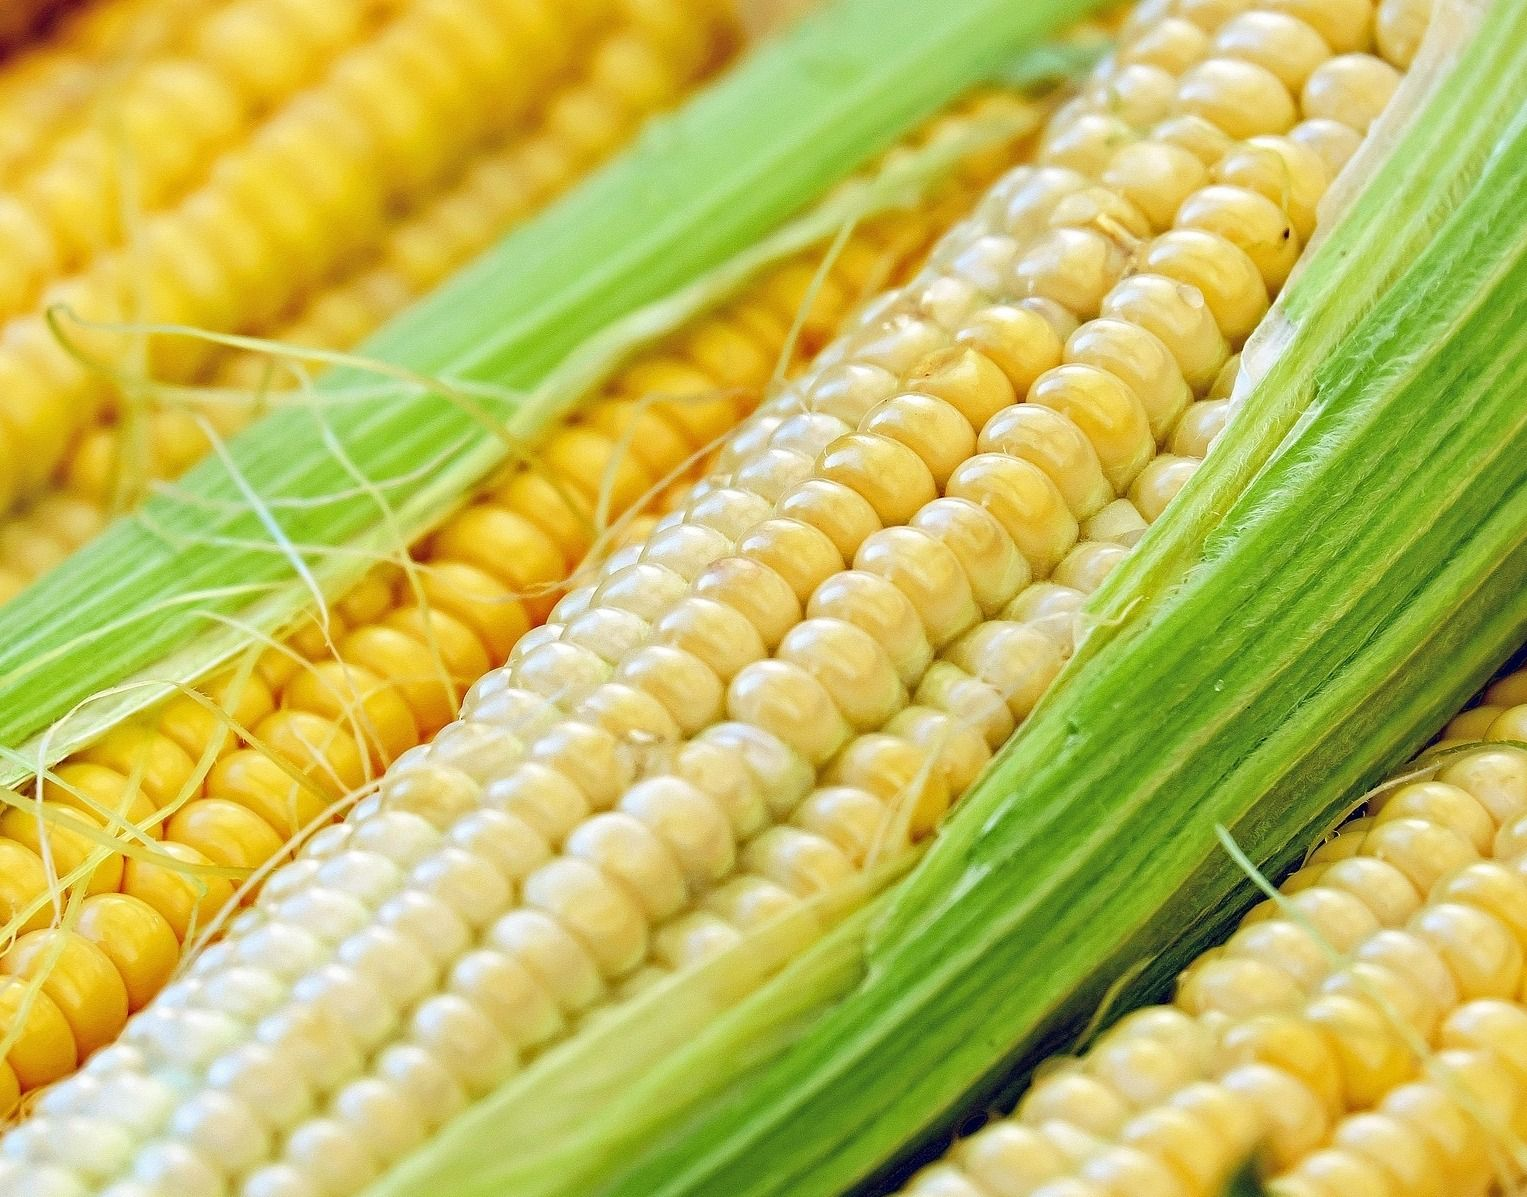 YELLOW CORN (NON GMO)